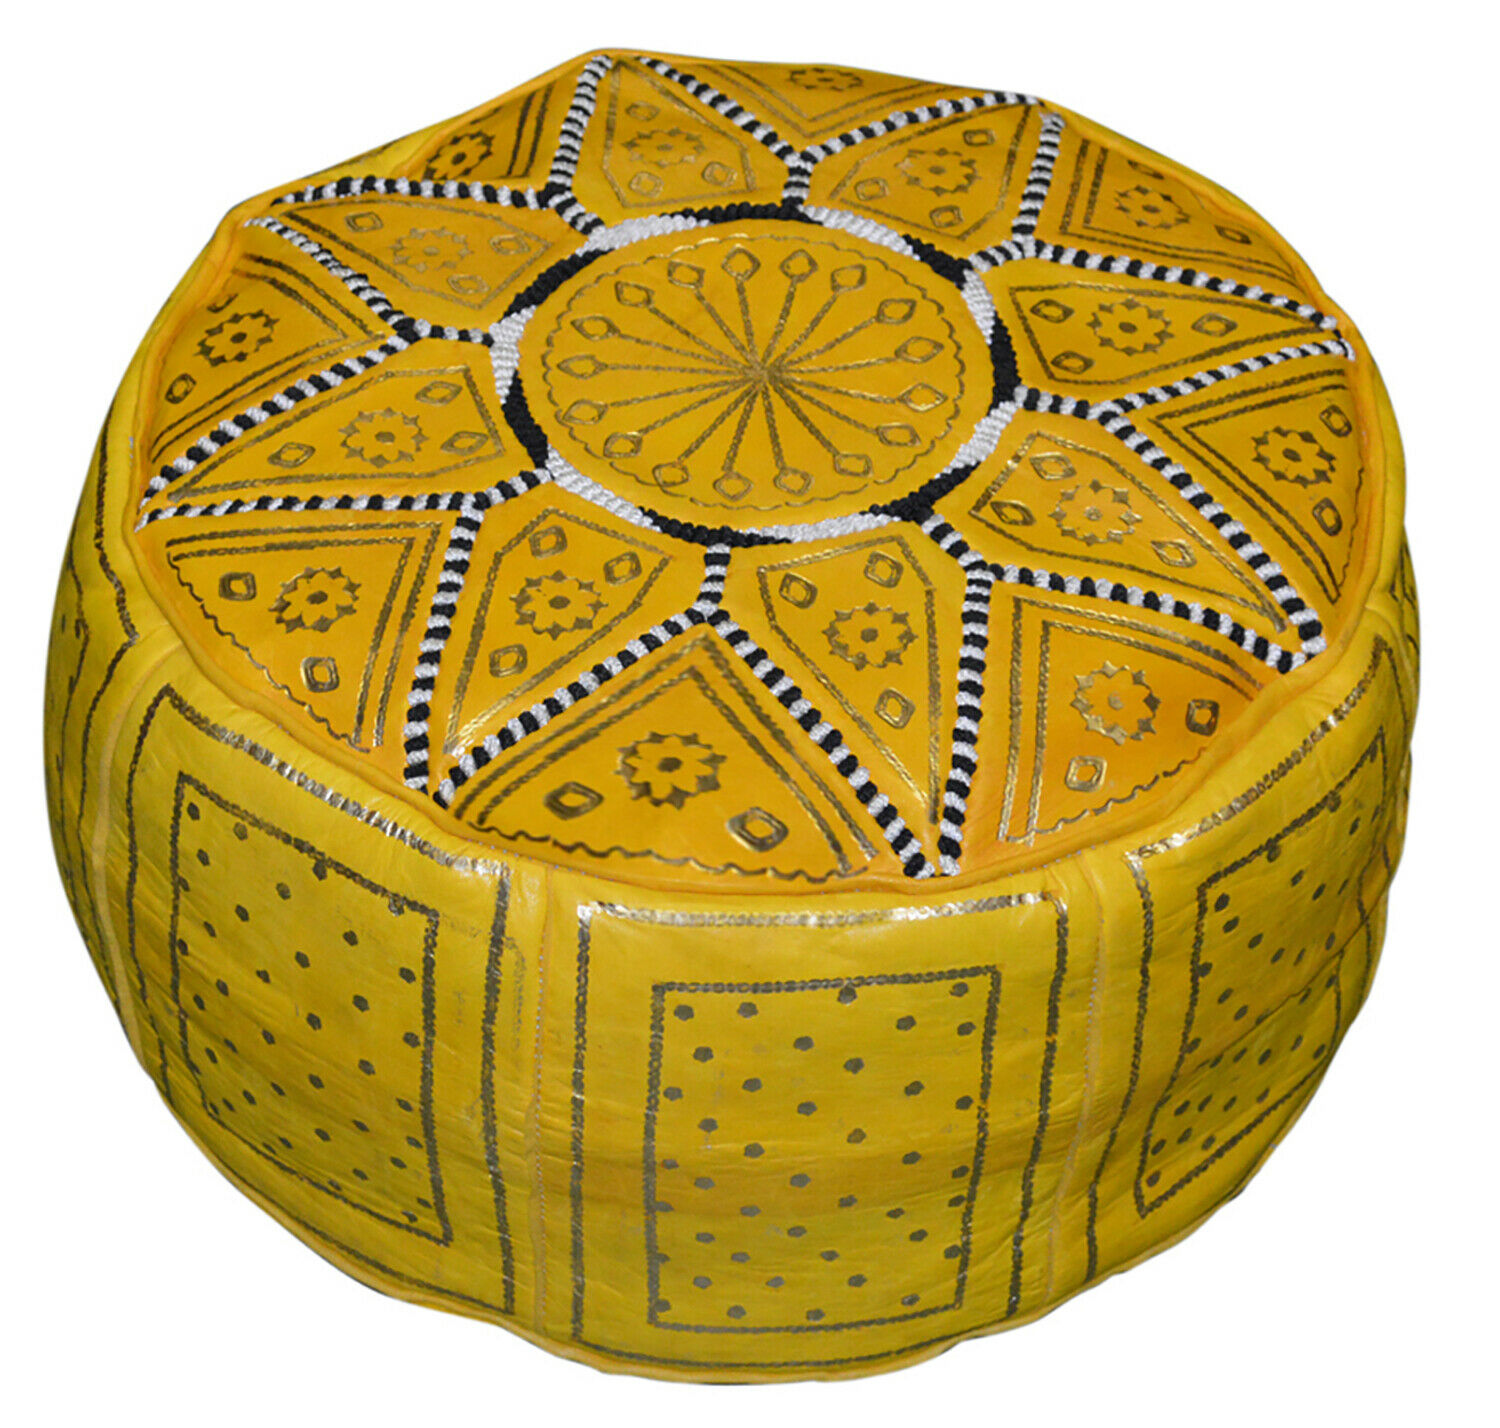 Pouf Moroccan Hassock Pooff Leather Pouff Ottoman Footstool Medium Yellow